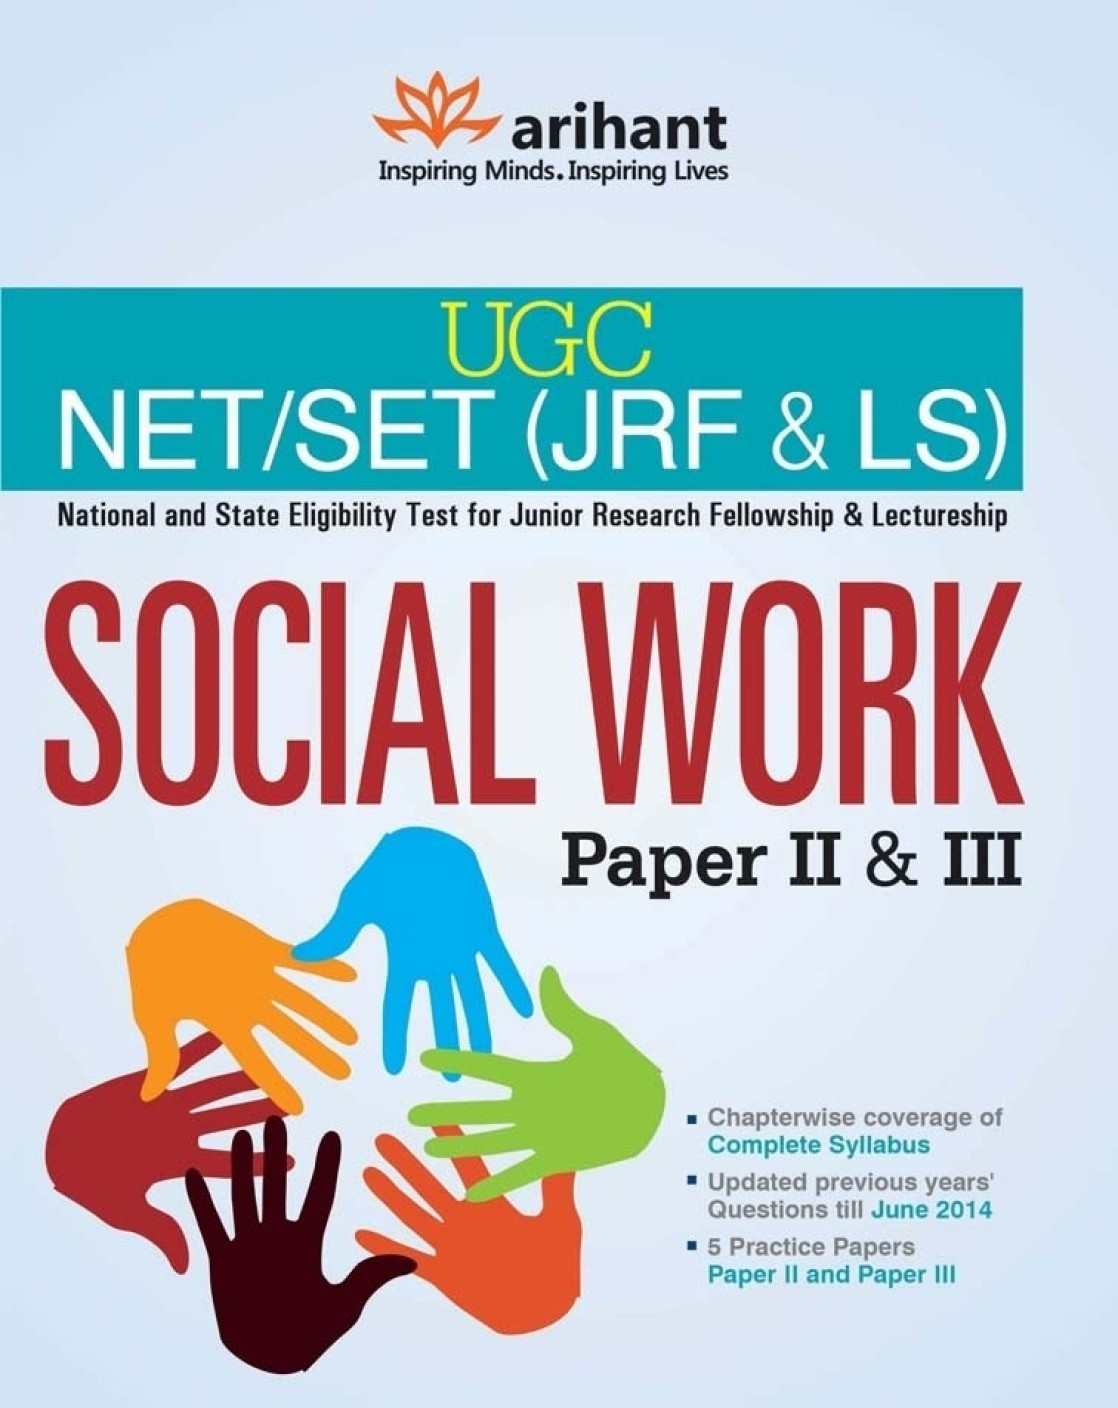 ugc net set jrf ls social work paper 2 3 2nd edition buy add to cart